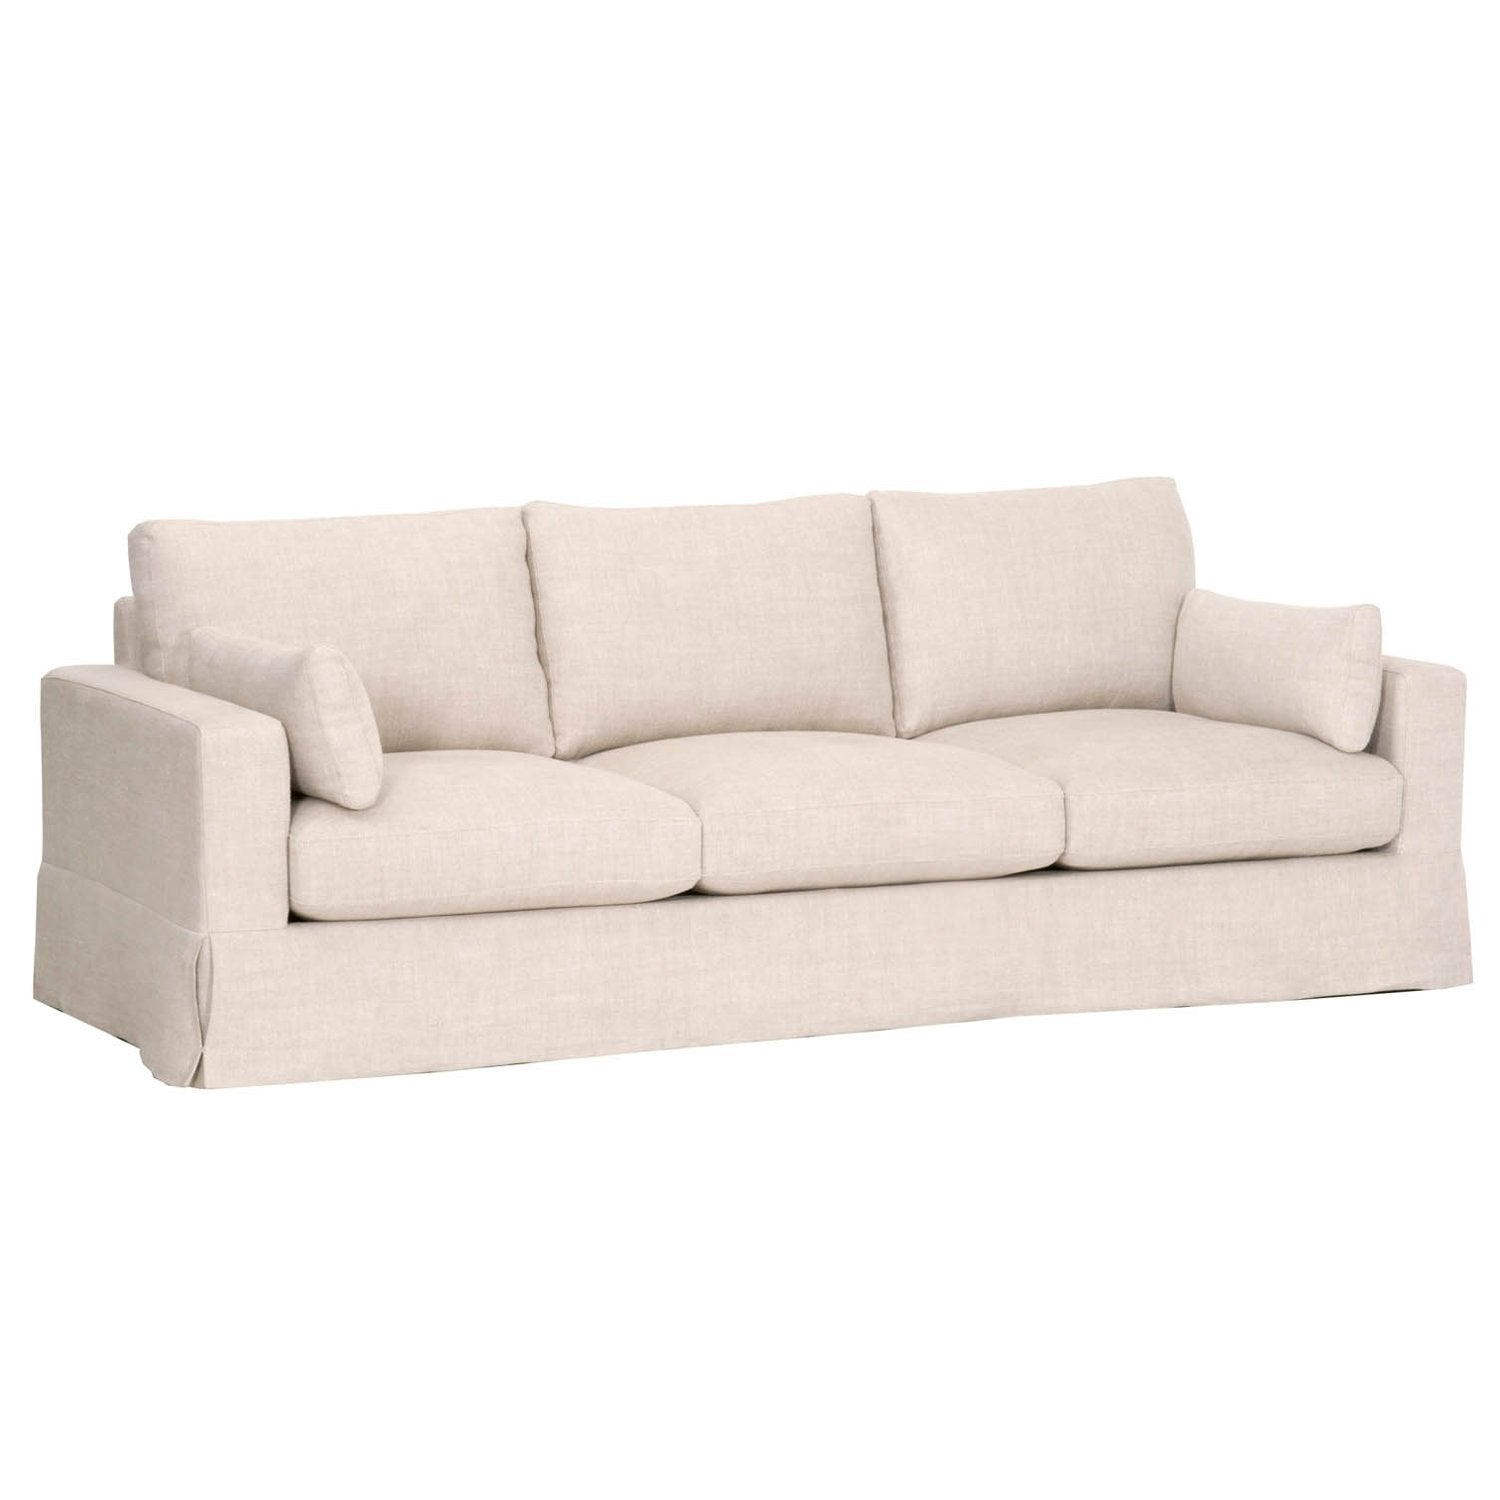 Essentials for Living Sofas & Sectionals